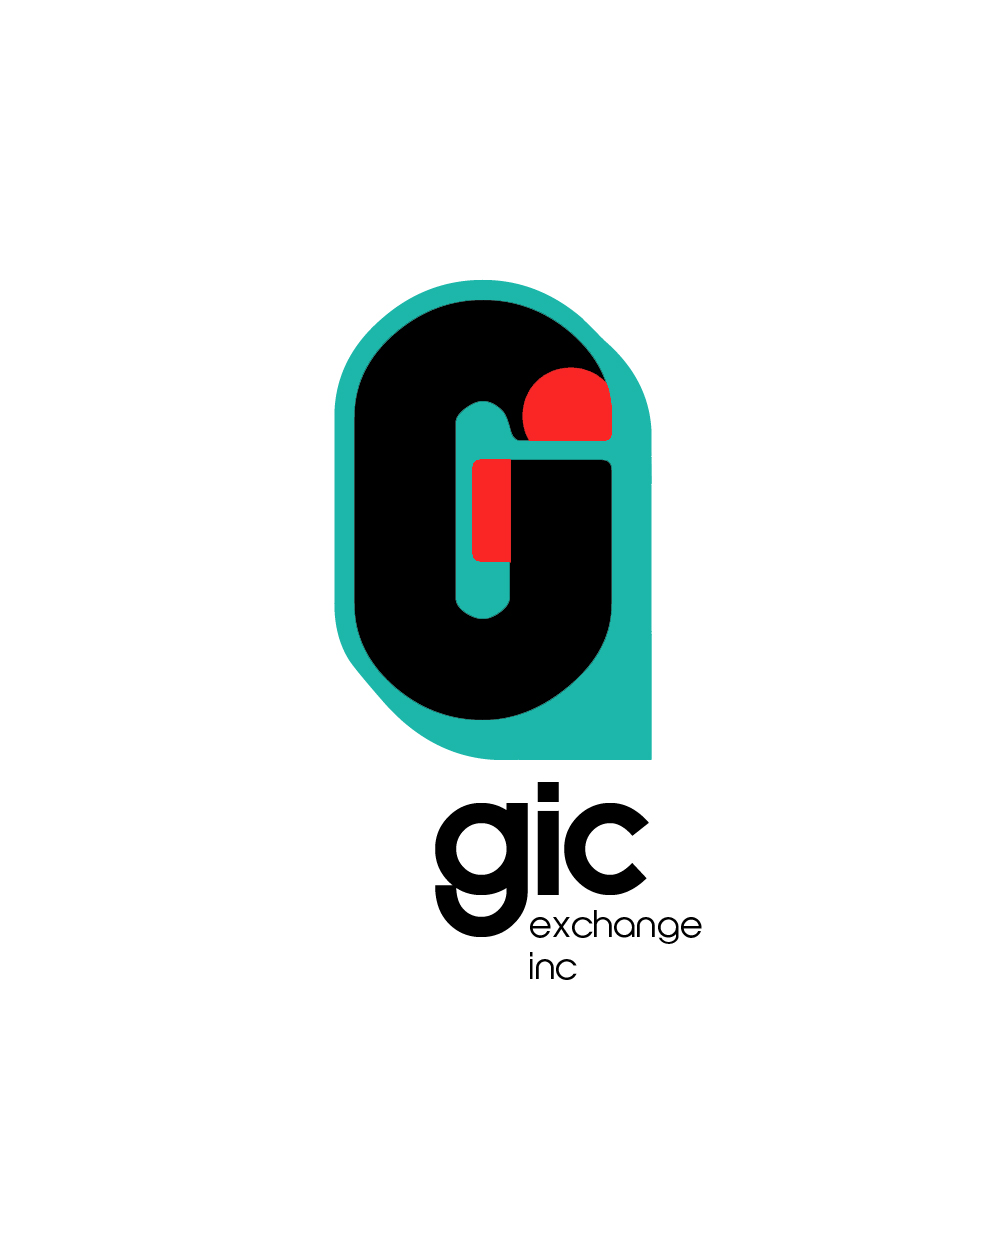 Logo Design by Miroslav Navrátil - Entry No. 83 in the Logo Design Contest Logo Design Needed for Exciting New Company GIC Exchange Inc..